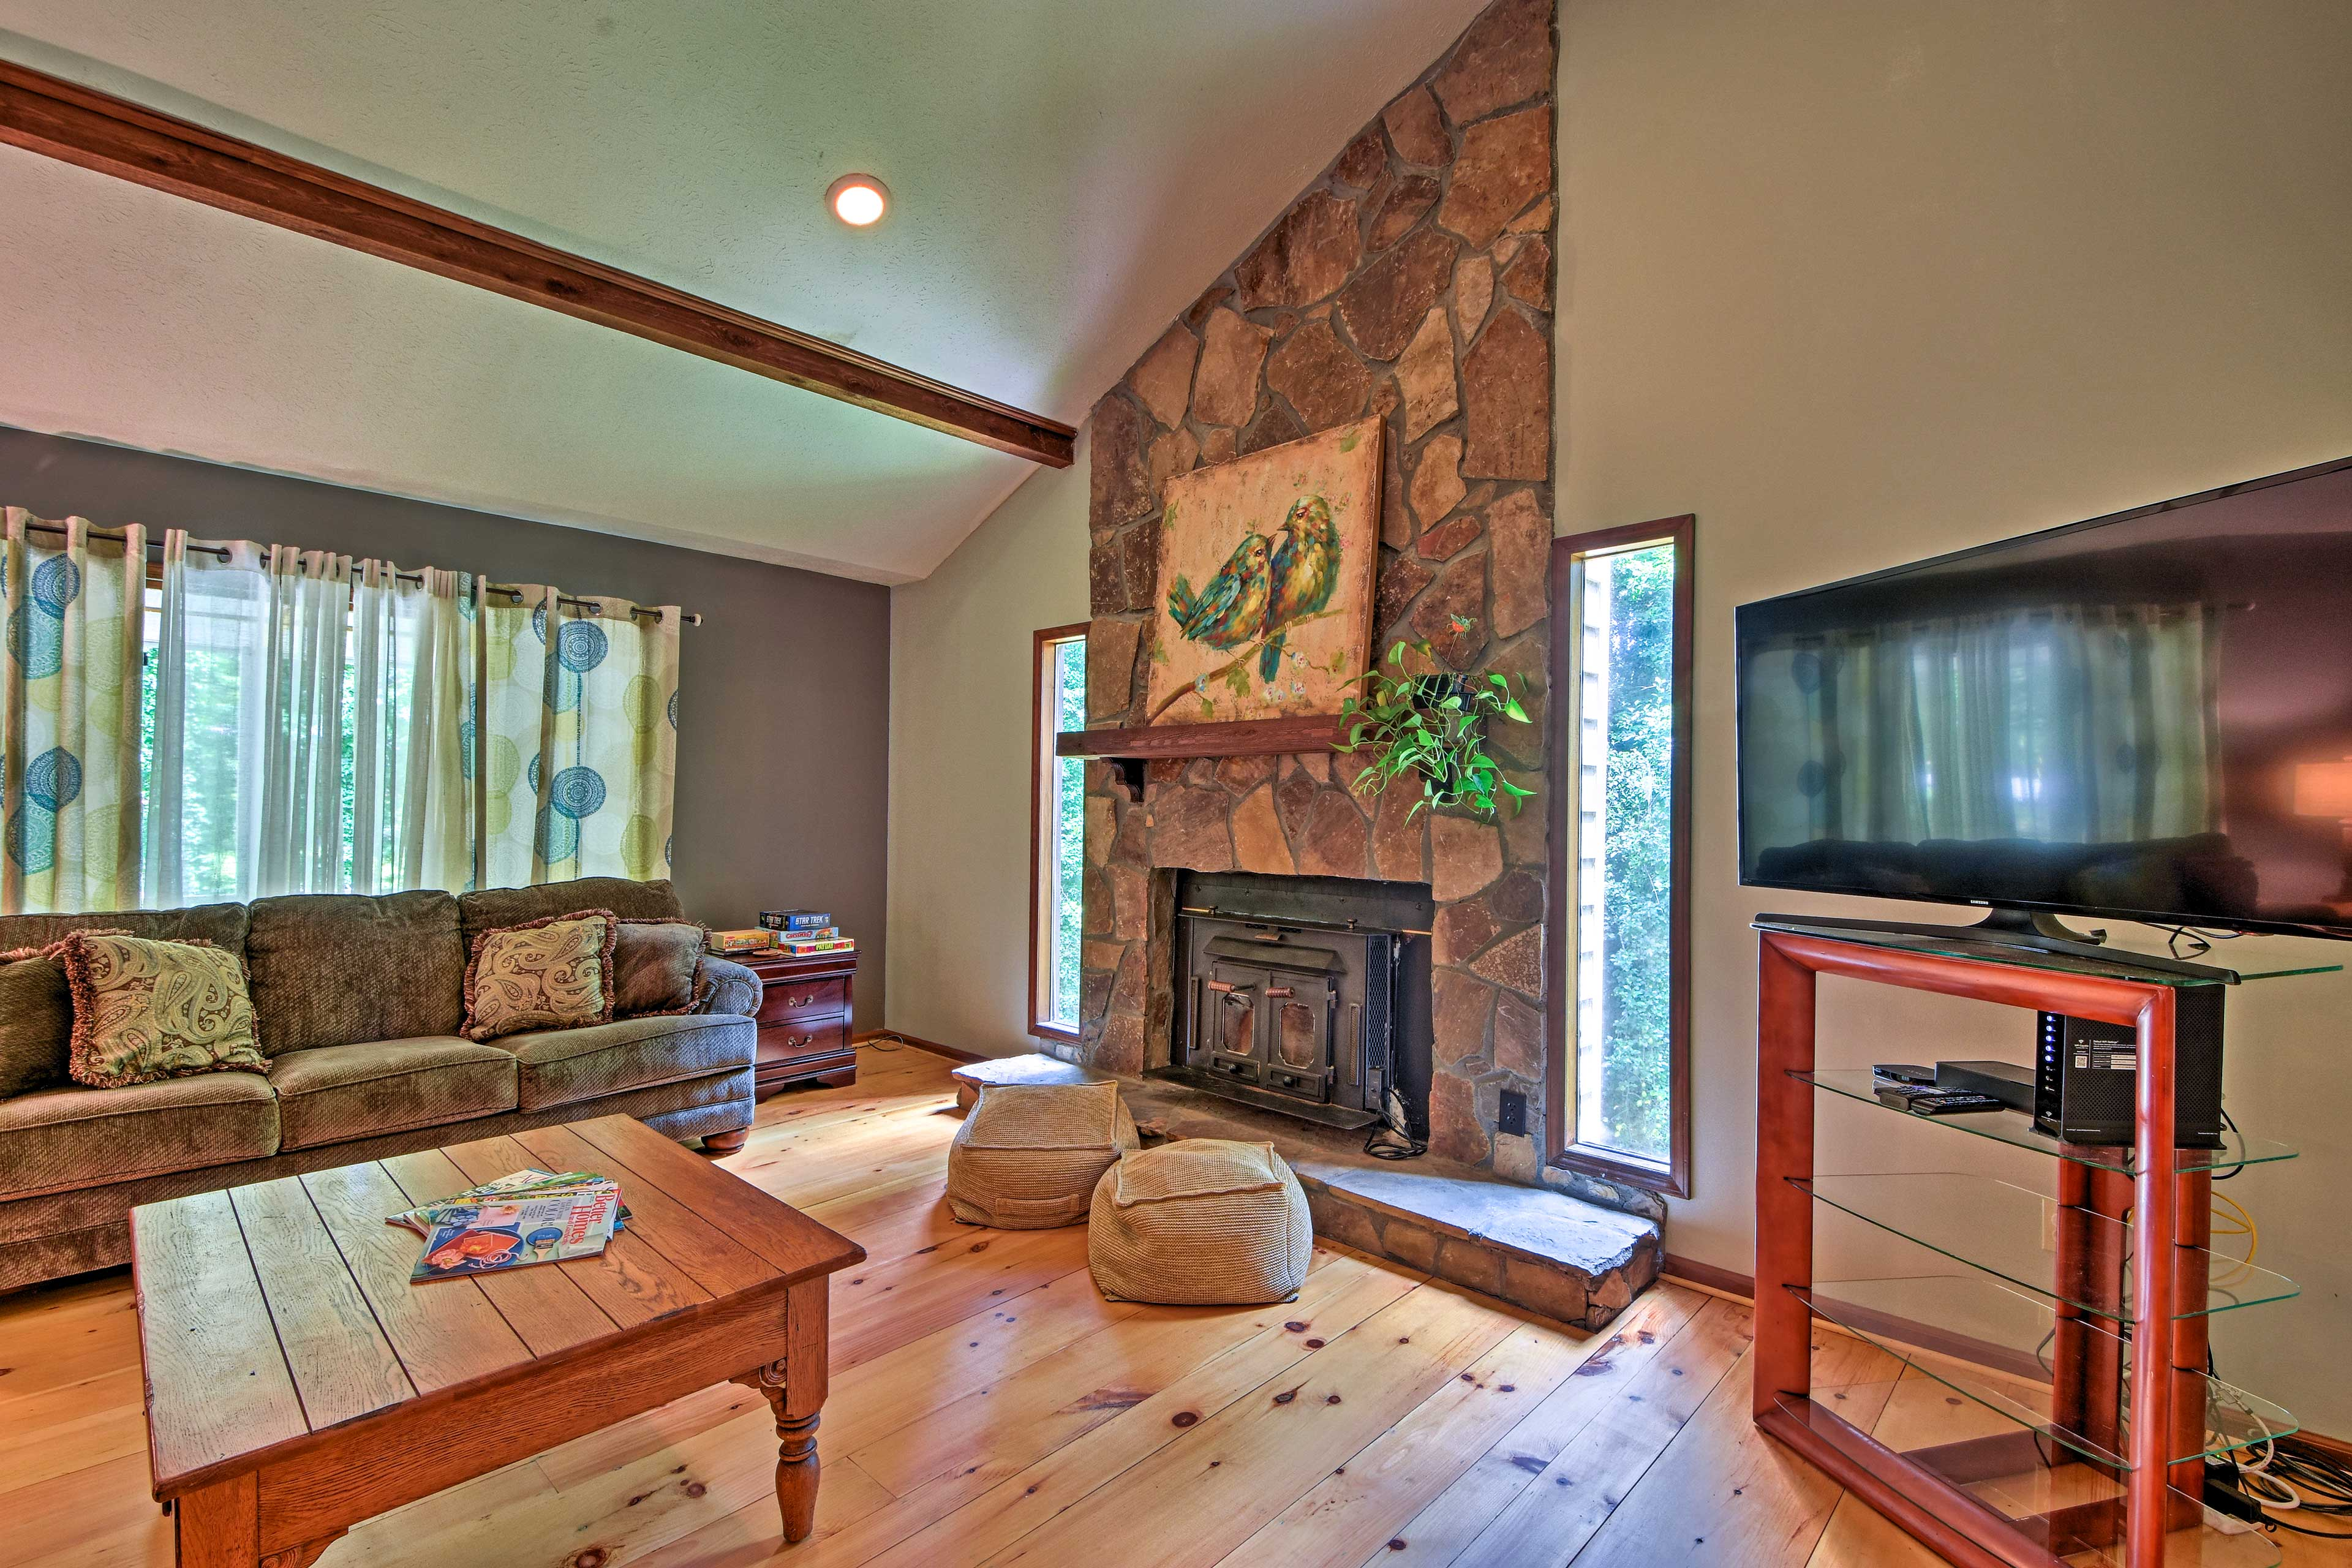 Wide yellow-pine floors create a rustic and inviting interior.